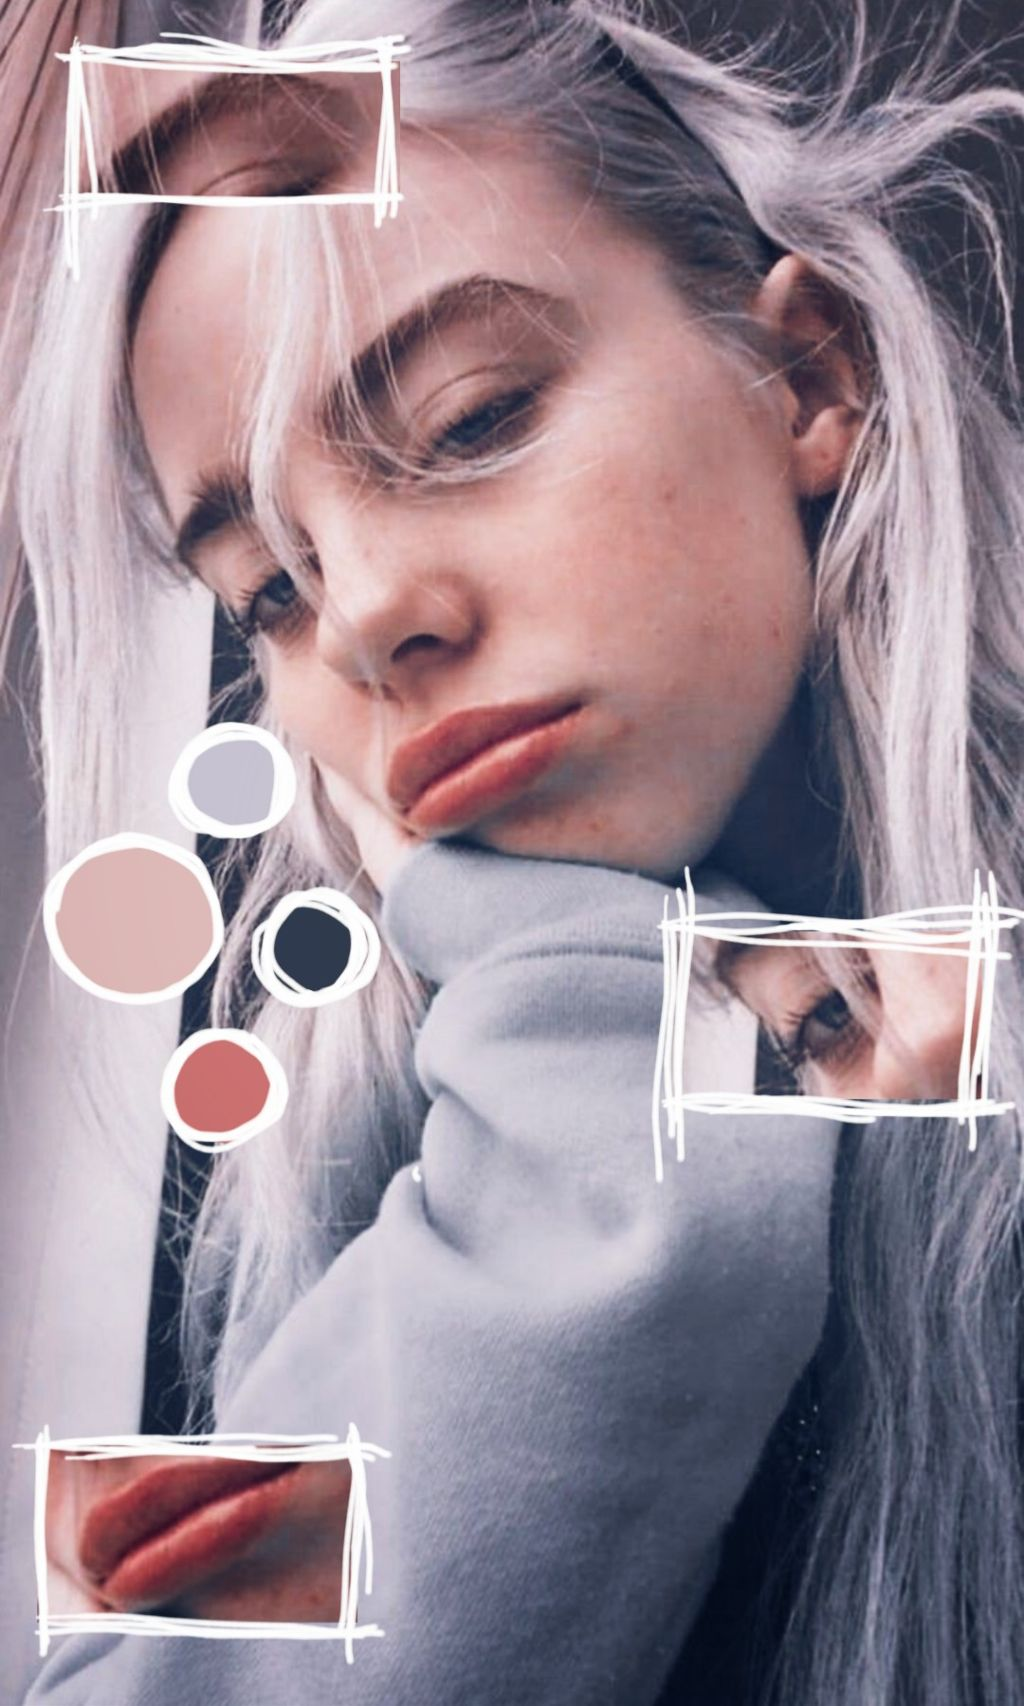 #billieeilish #anatomy